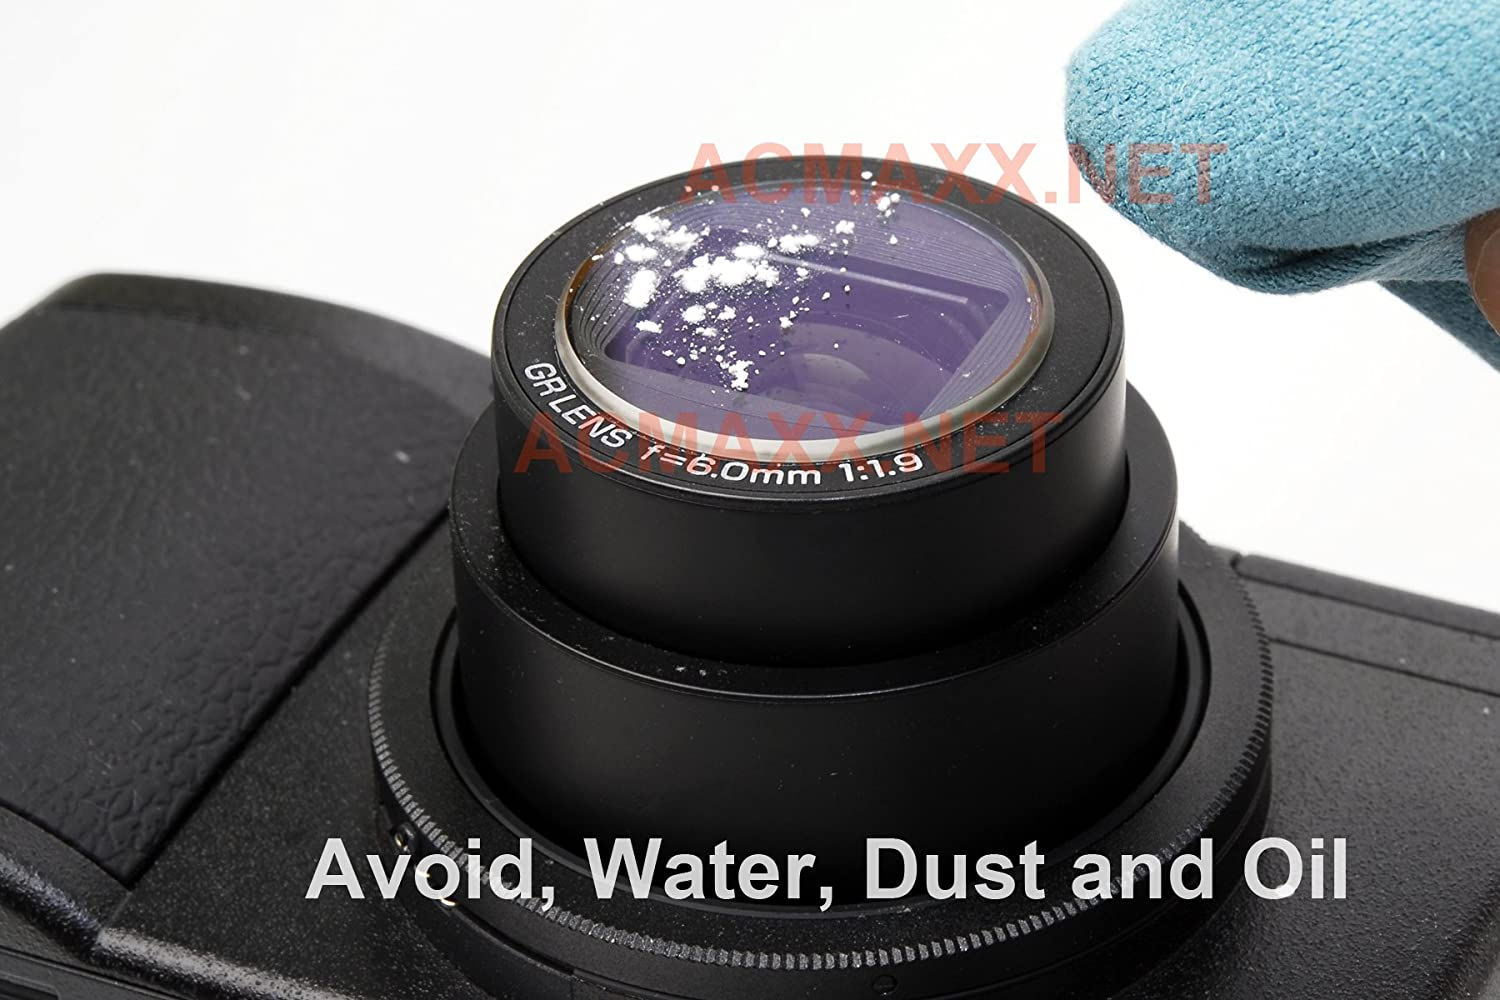 ACMAXX Multi-Coated LENS ARMOR UV FILTER for Canon Powershot SX1 IS Digital Camera